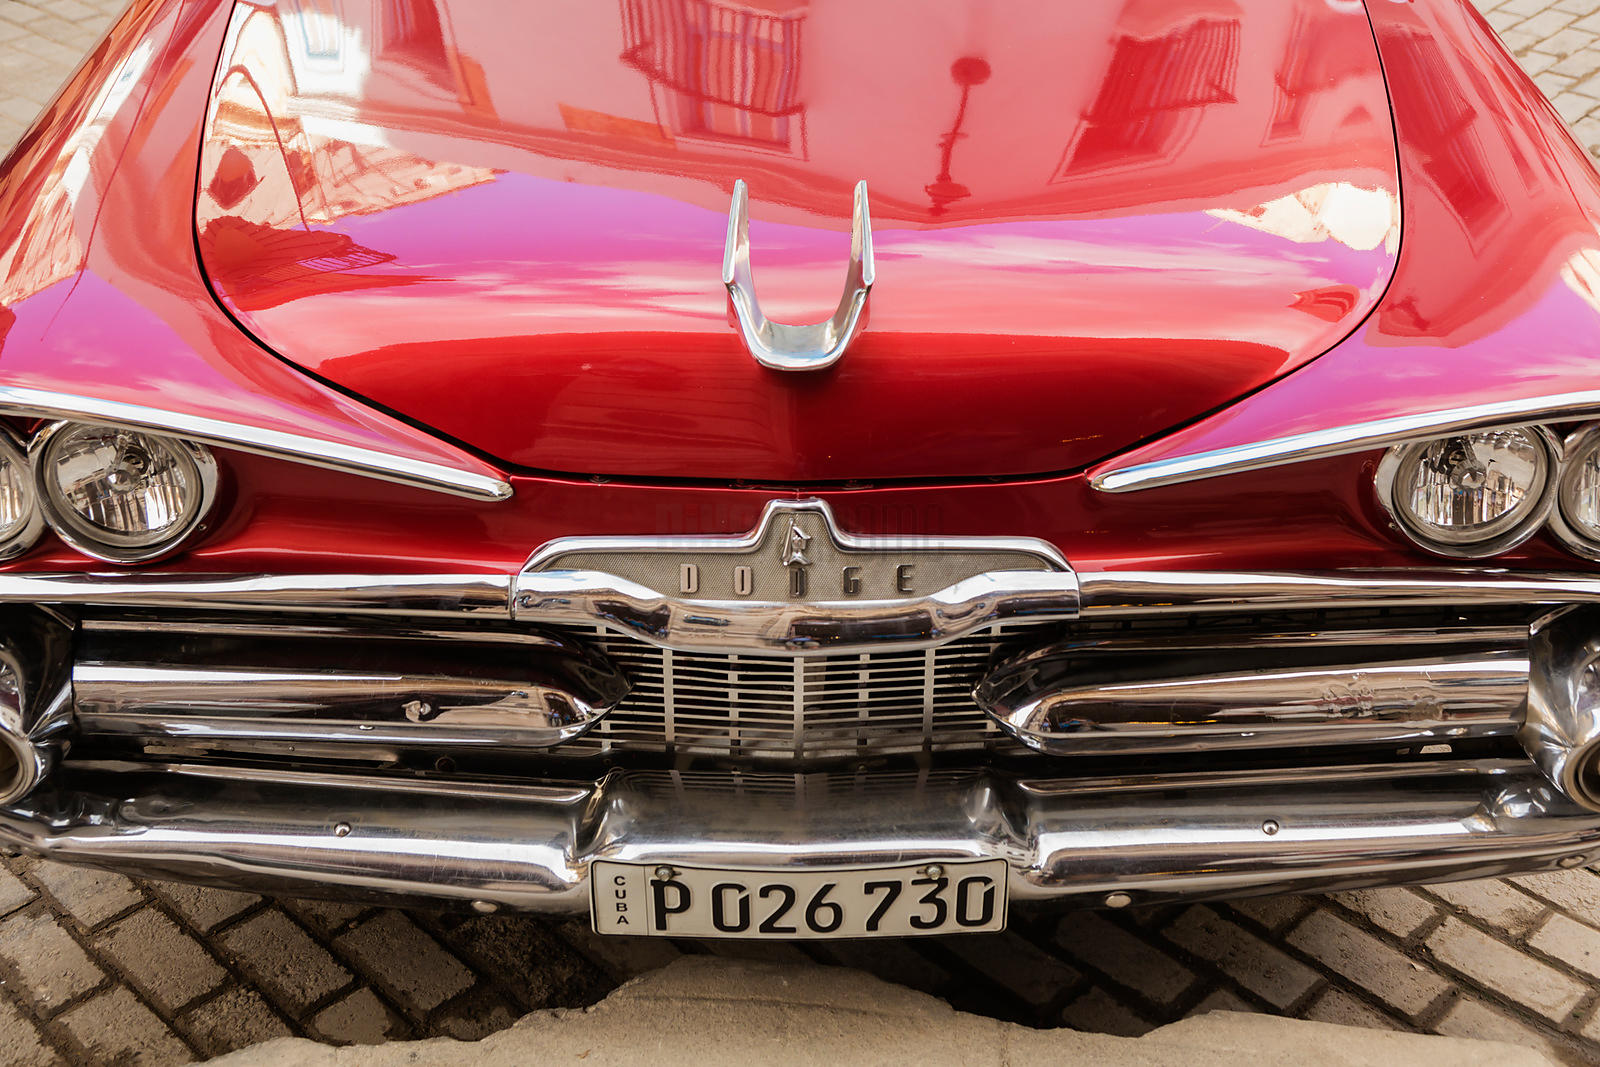 Front End of a Vintage Dodge